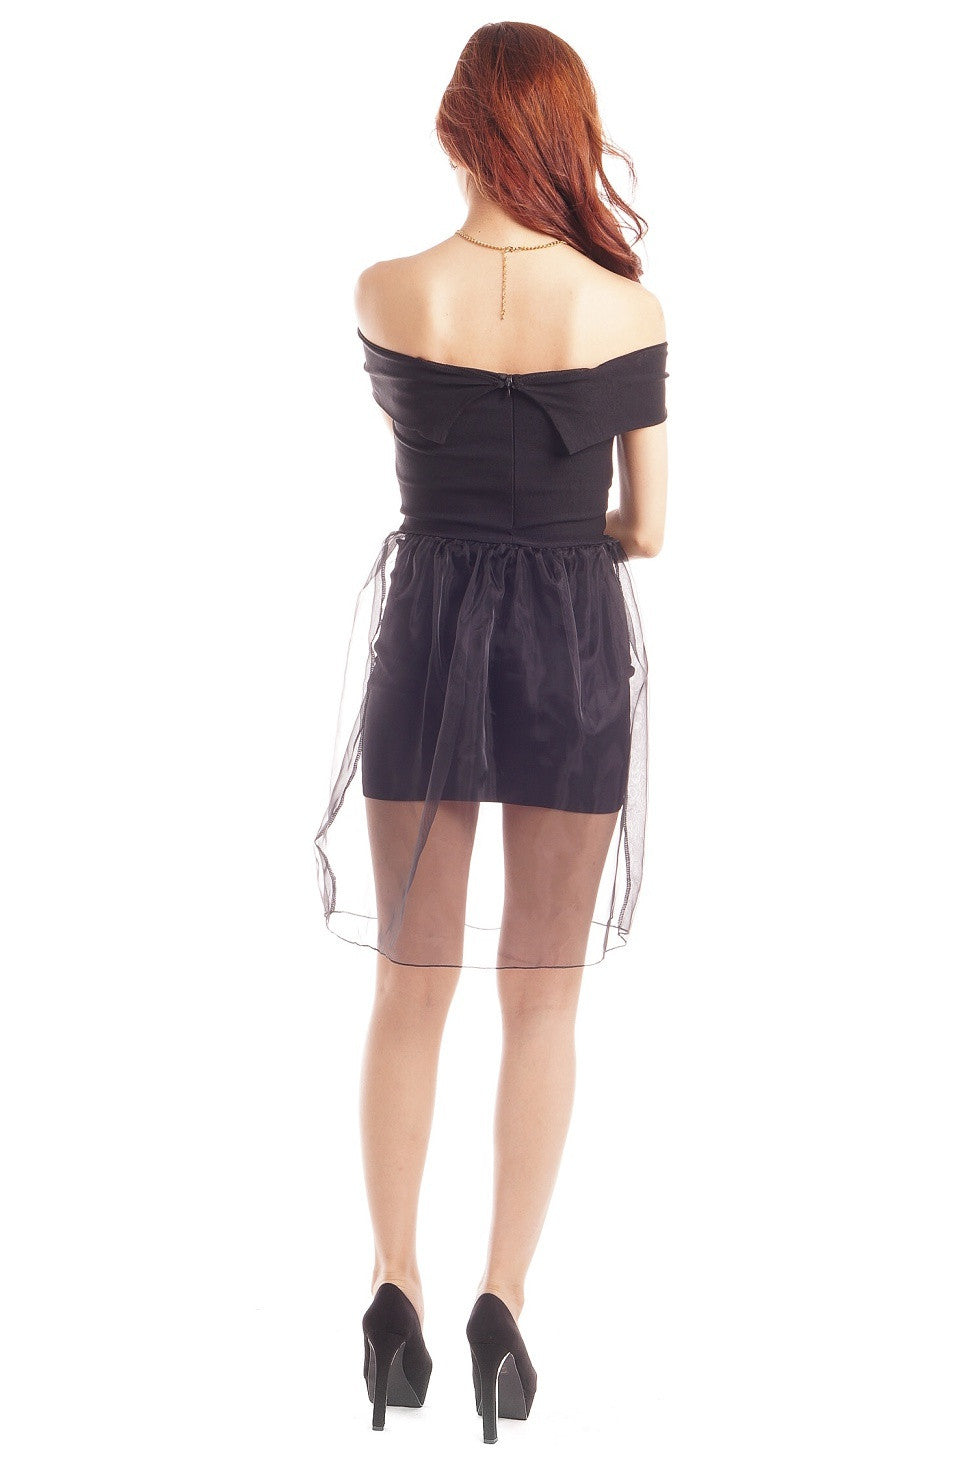 XENA ORGANZA OVERLAY DRESS IN BLACK